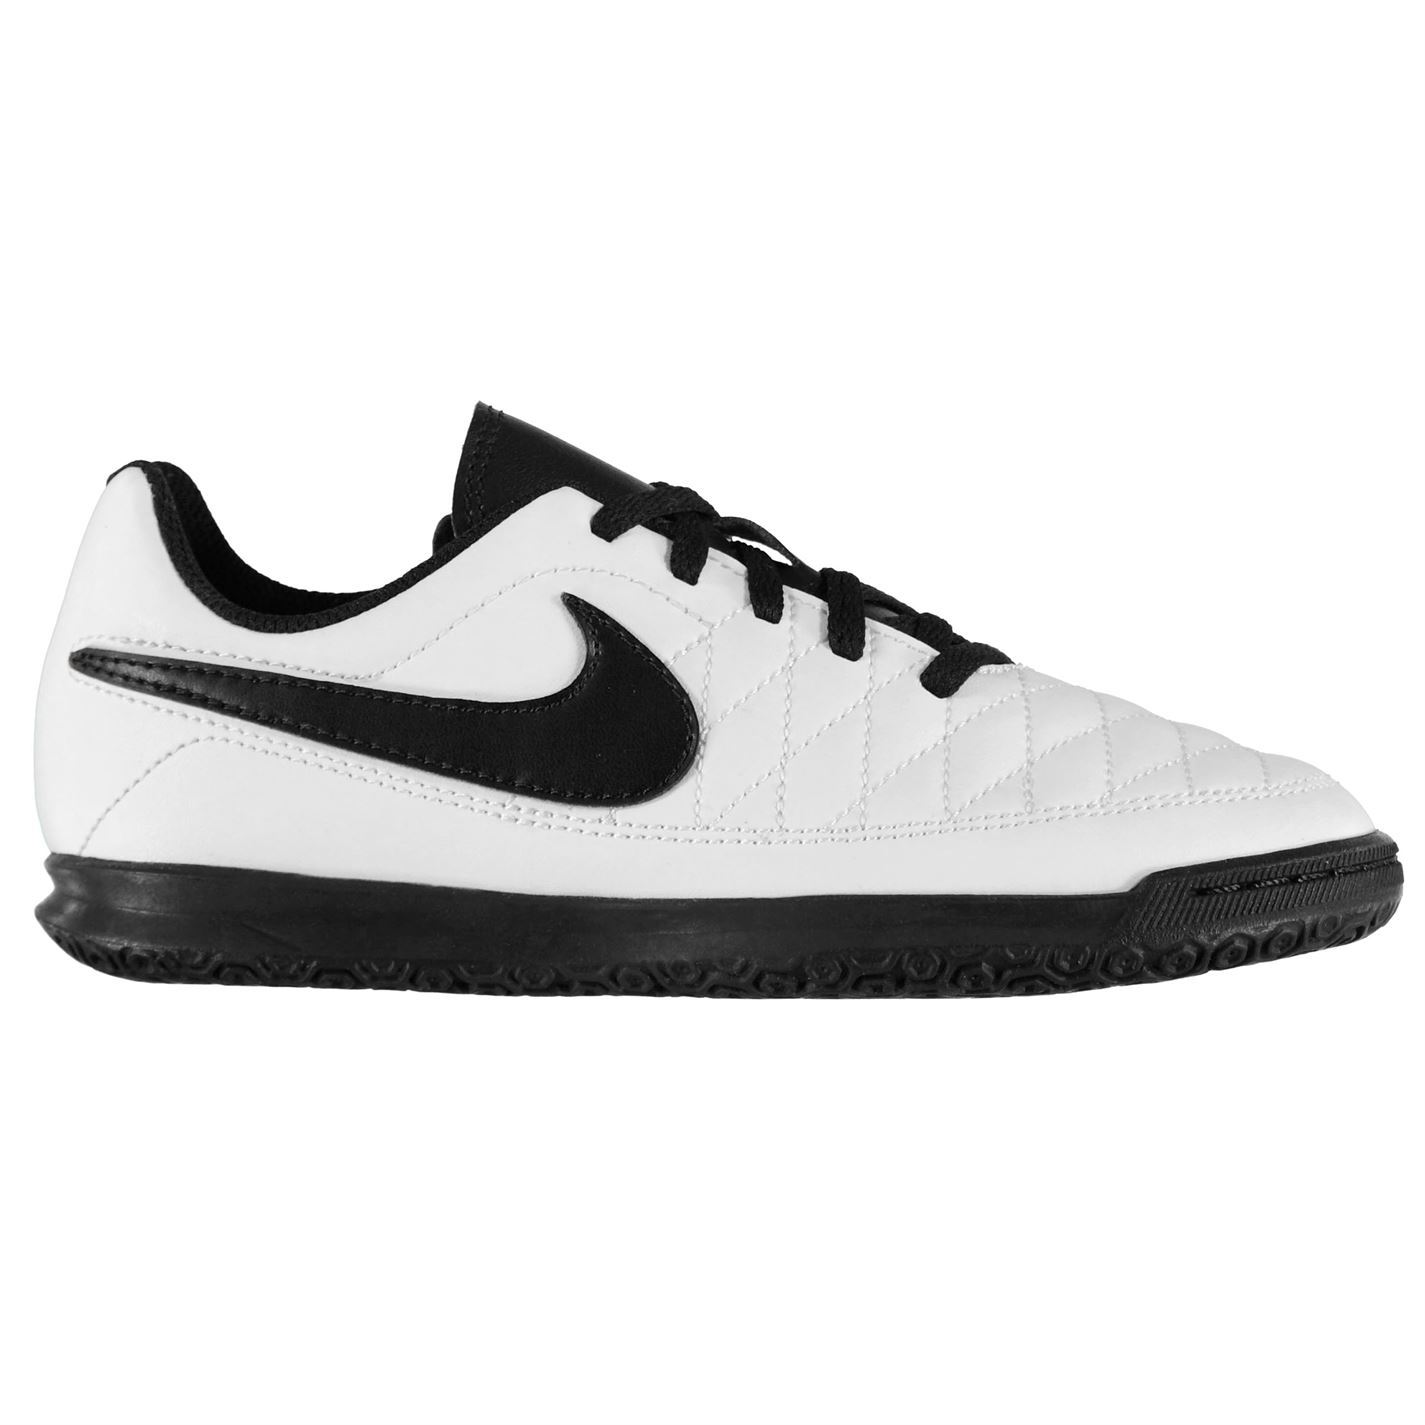 Nike-majestry-Indoor-Court-Football-Baskets-enfant-foot-baskets-chaussures miniature 17